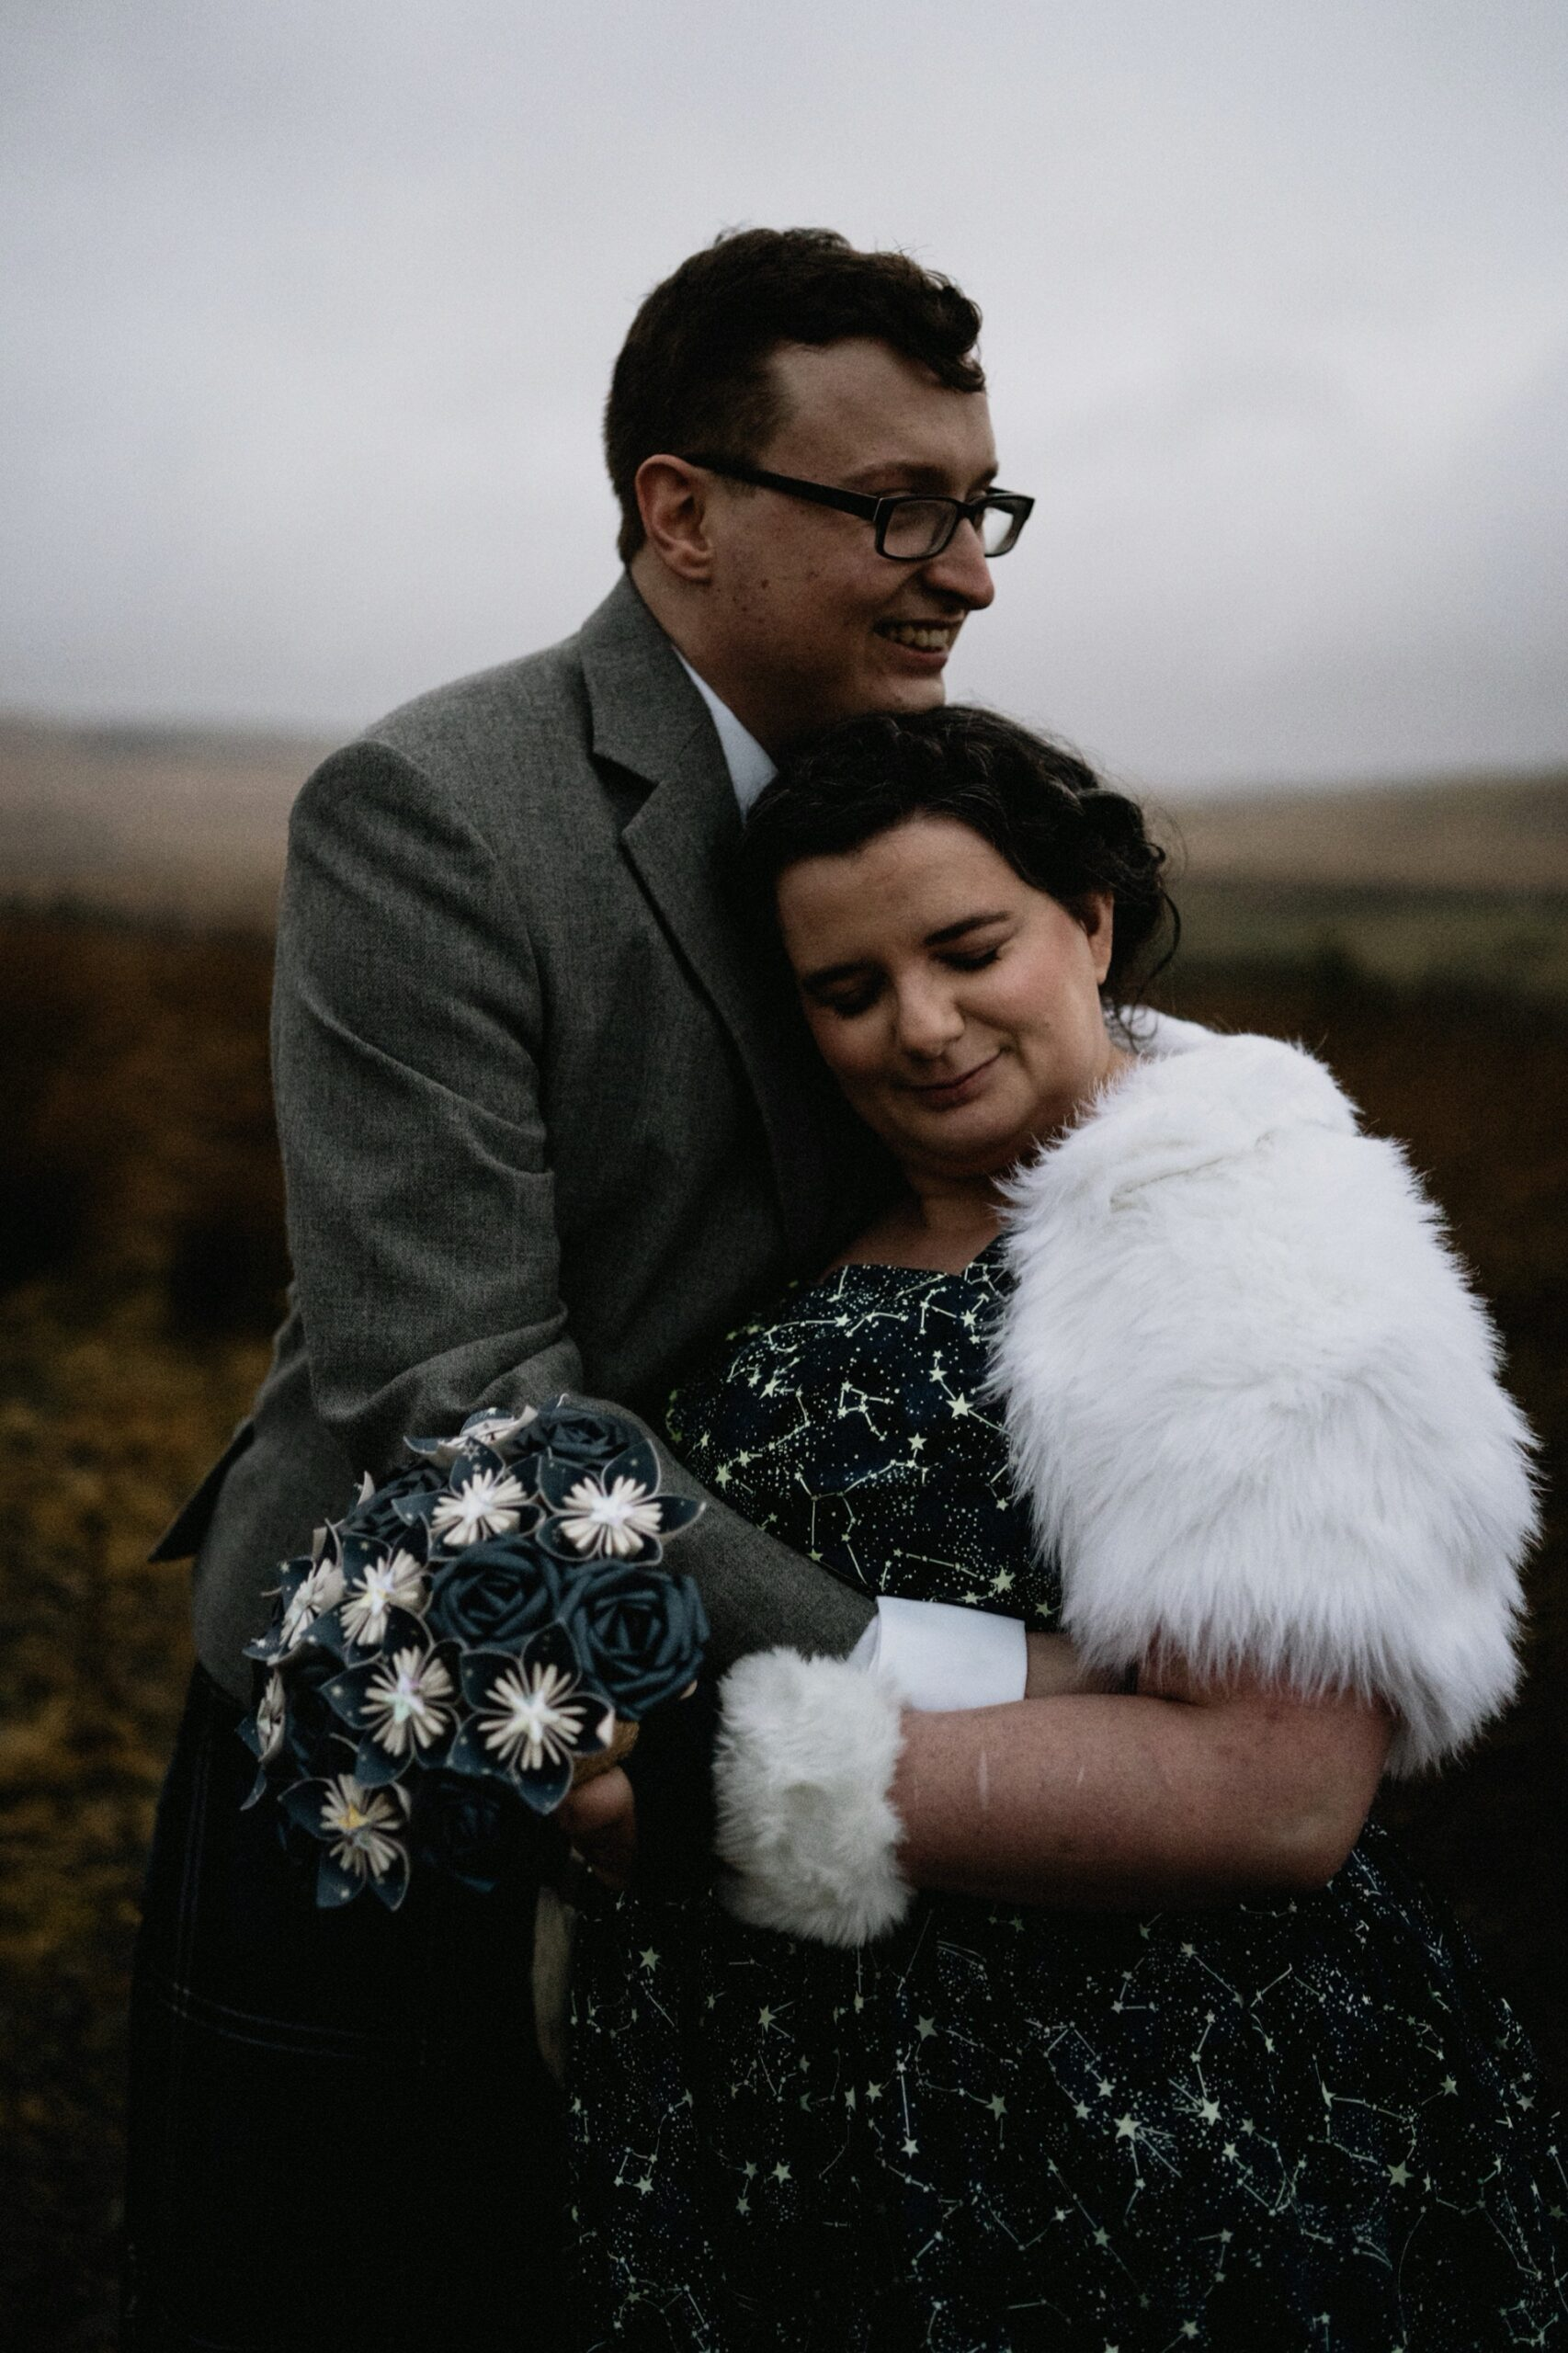 Bride and Groom hug on the moors outside the dark sky observatory.   Bride wears Celestial Wedding Dress with Constellation Stars print, fur shrug and cuffs.